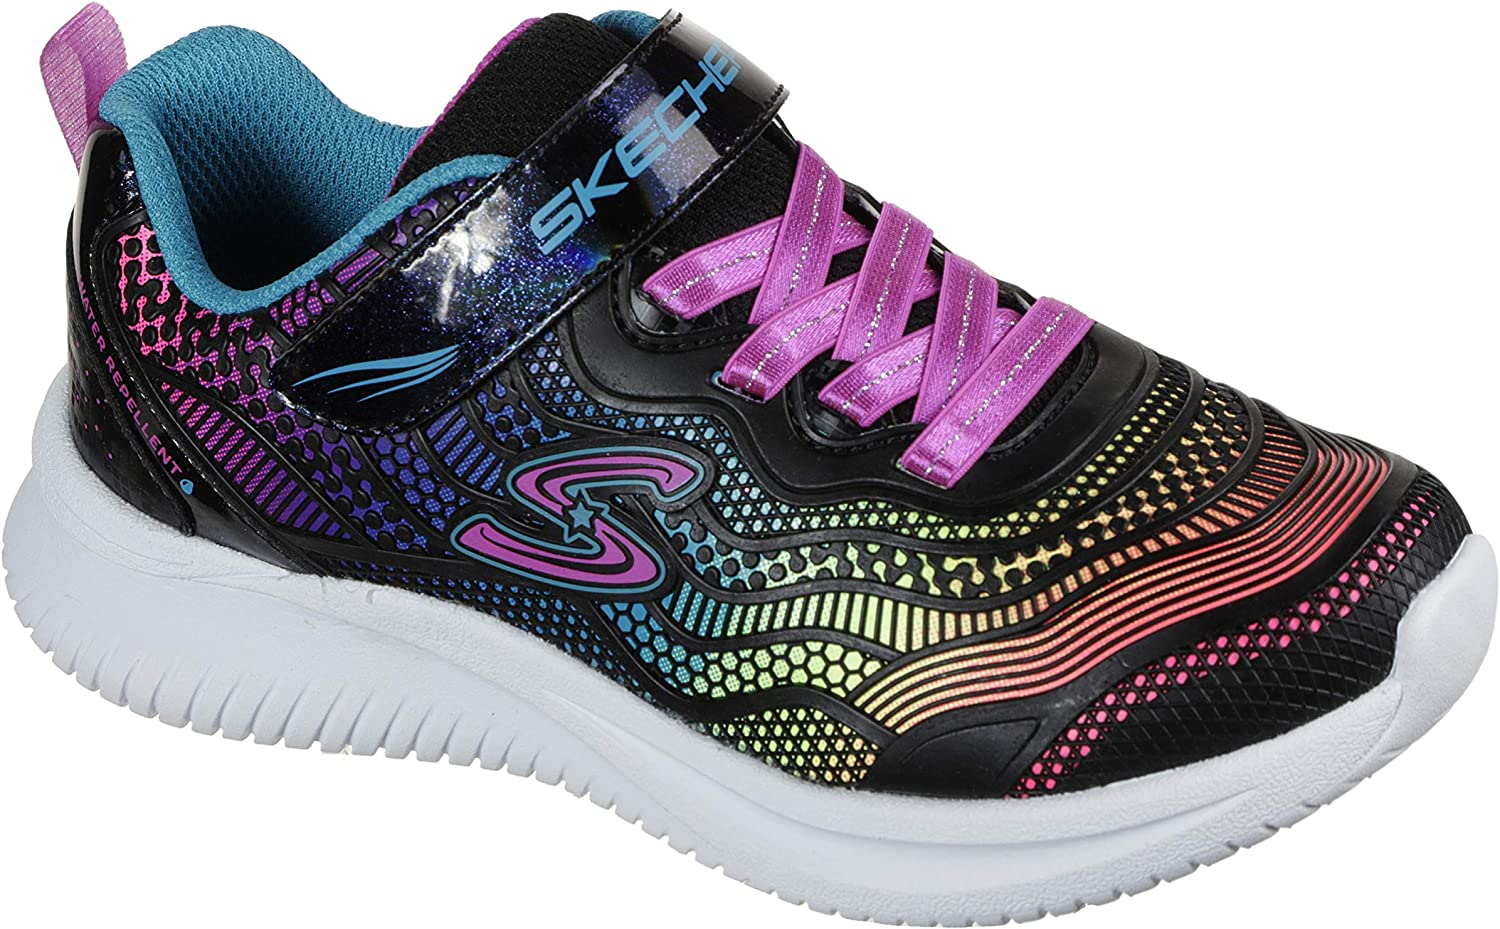 Skechers Time sale Unisex-Child Jumpsters Sneaker High material